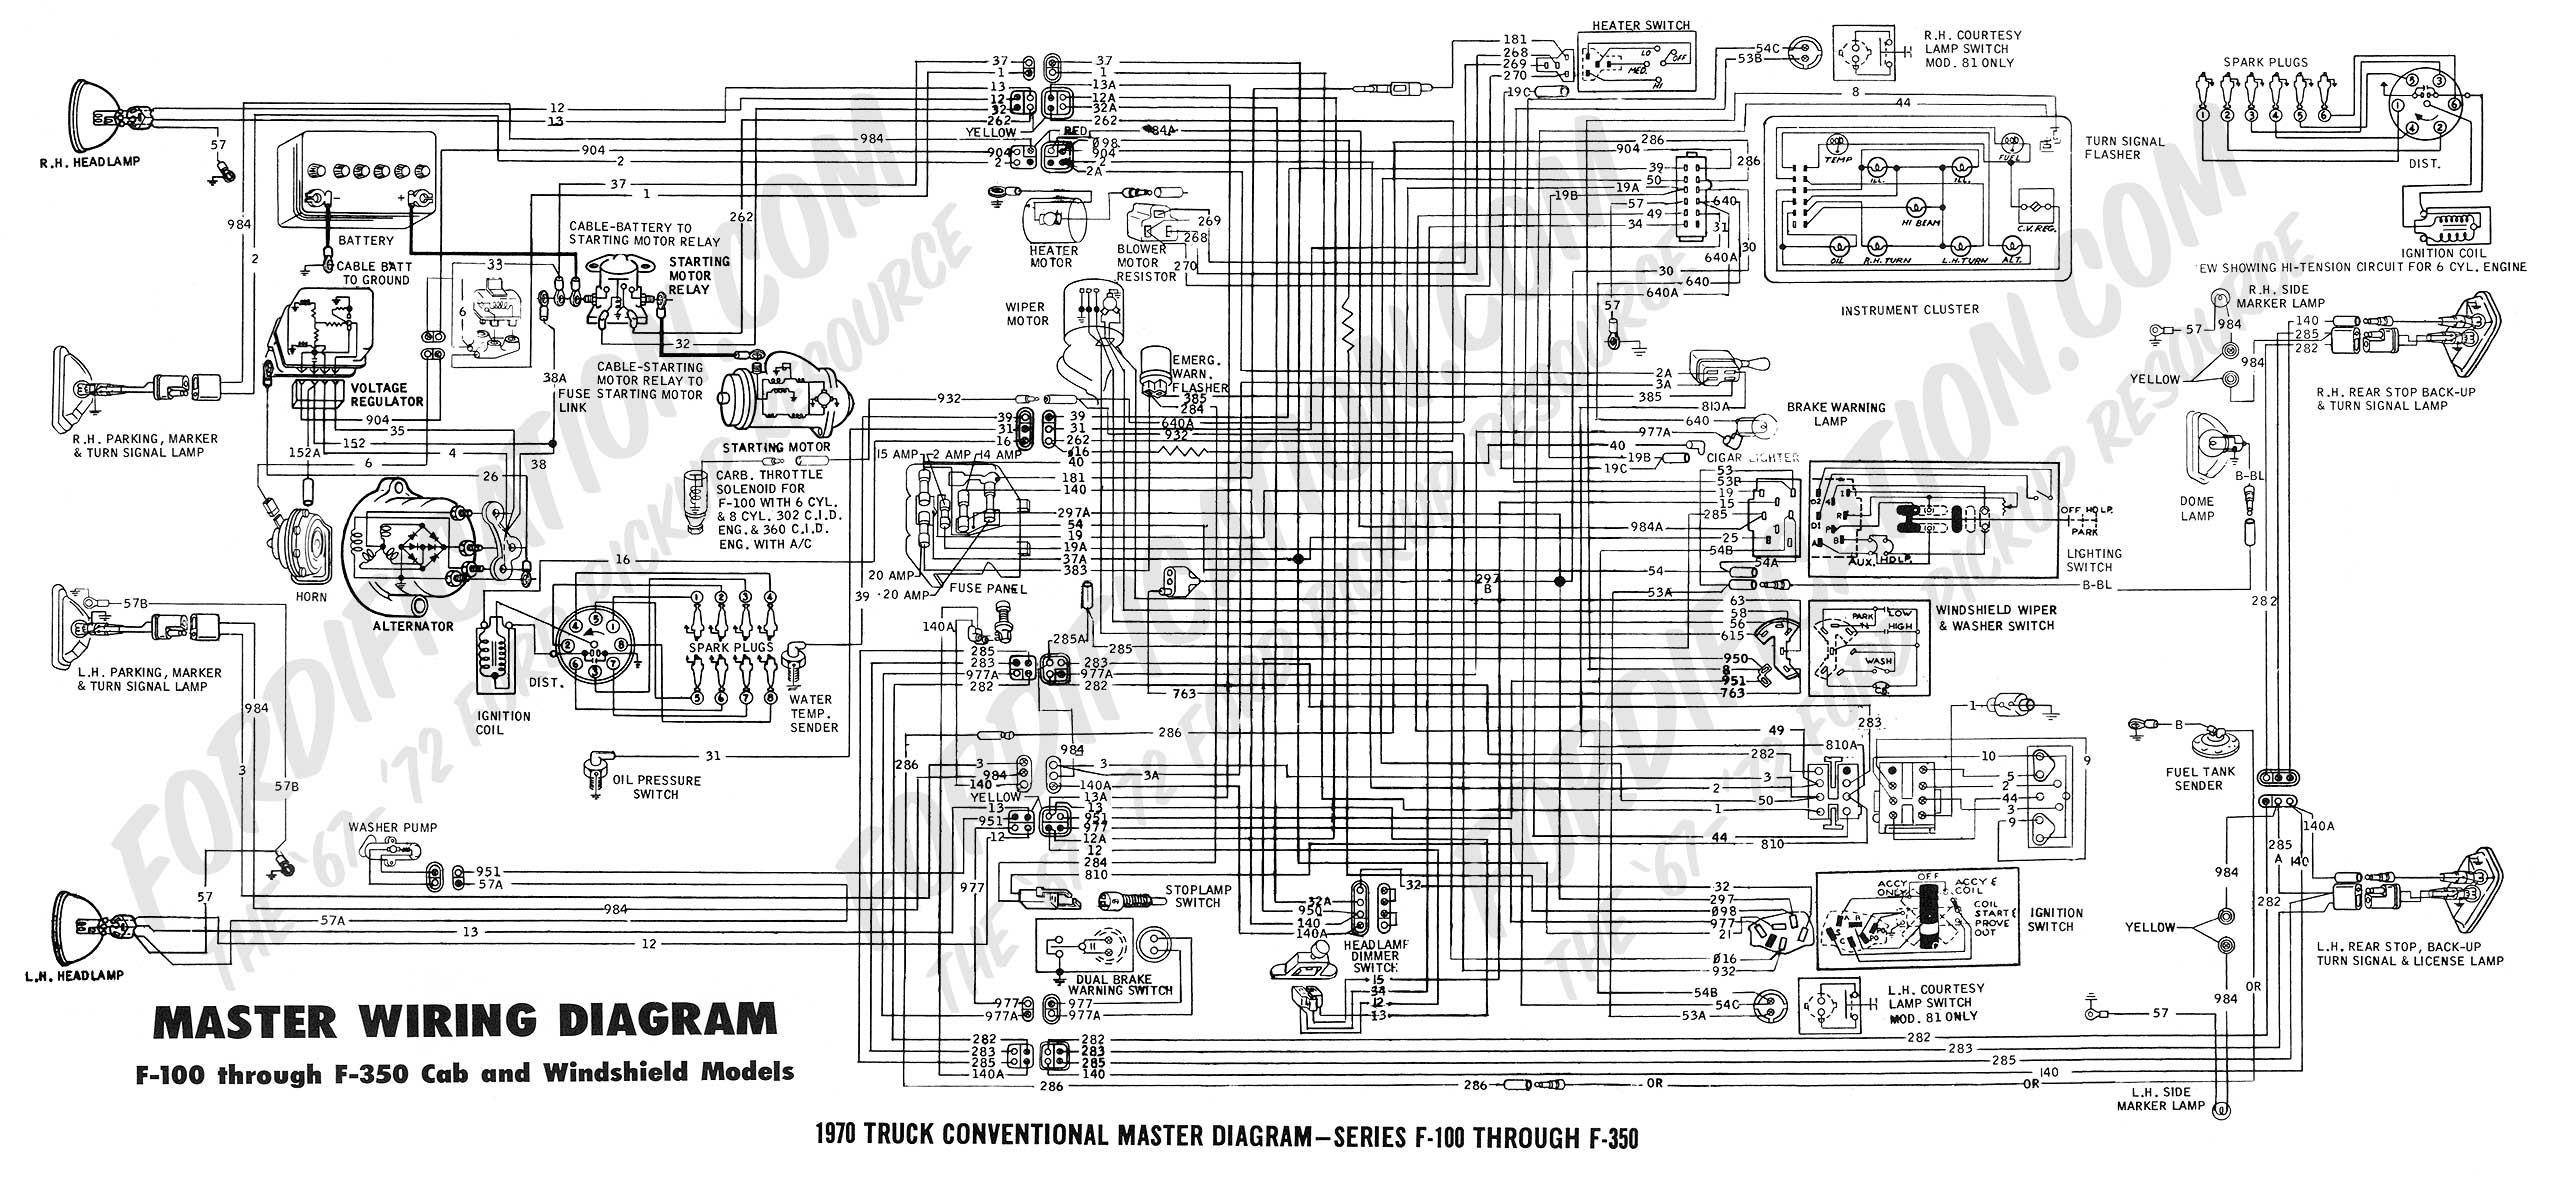 ford f 350 wiring diagrams electrical work wiring diagram u2022 rh aglabs co